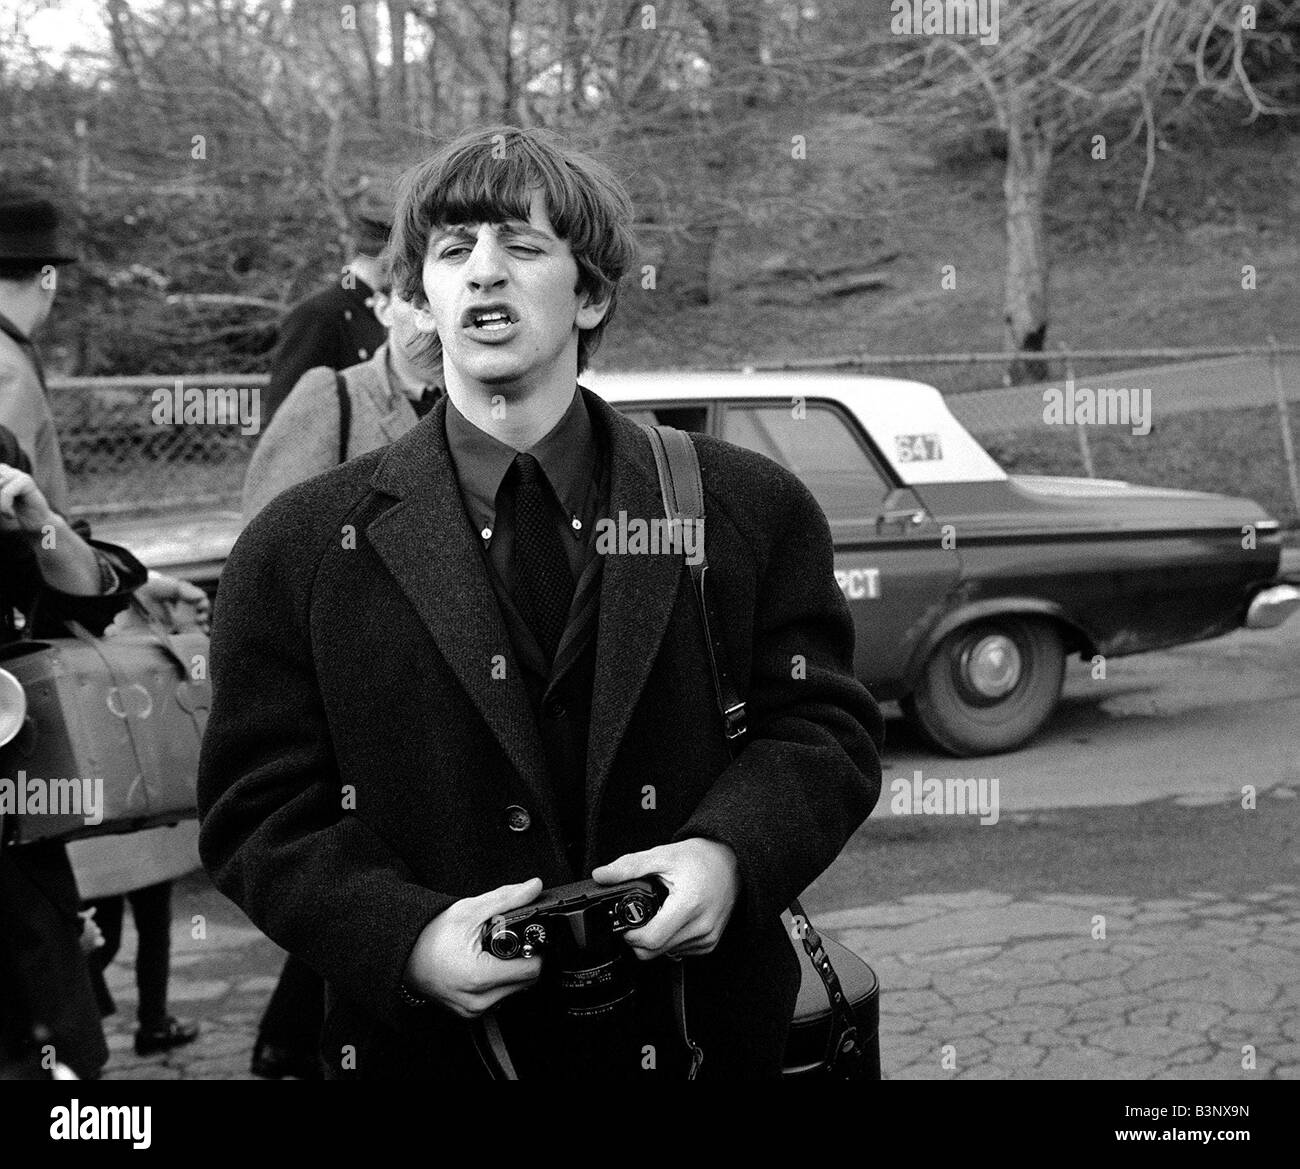 The Beatles February 1964 Ringo Starr holding camera in ...  The Beatles Feb...